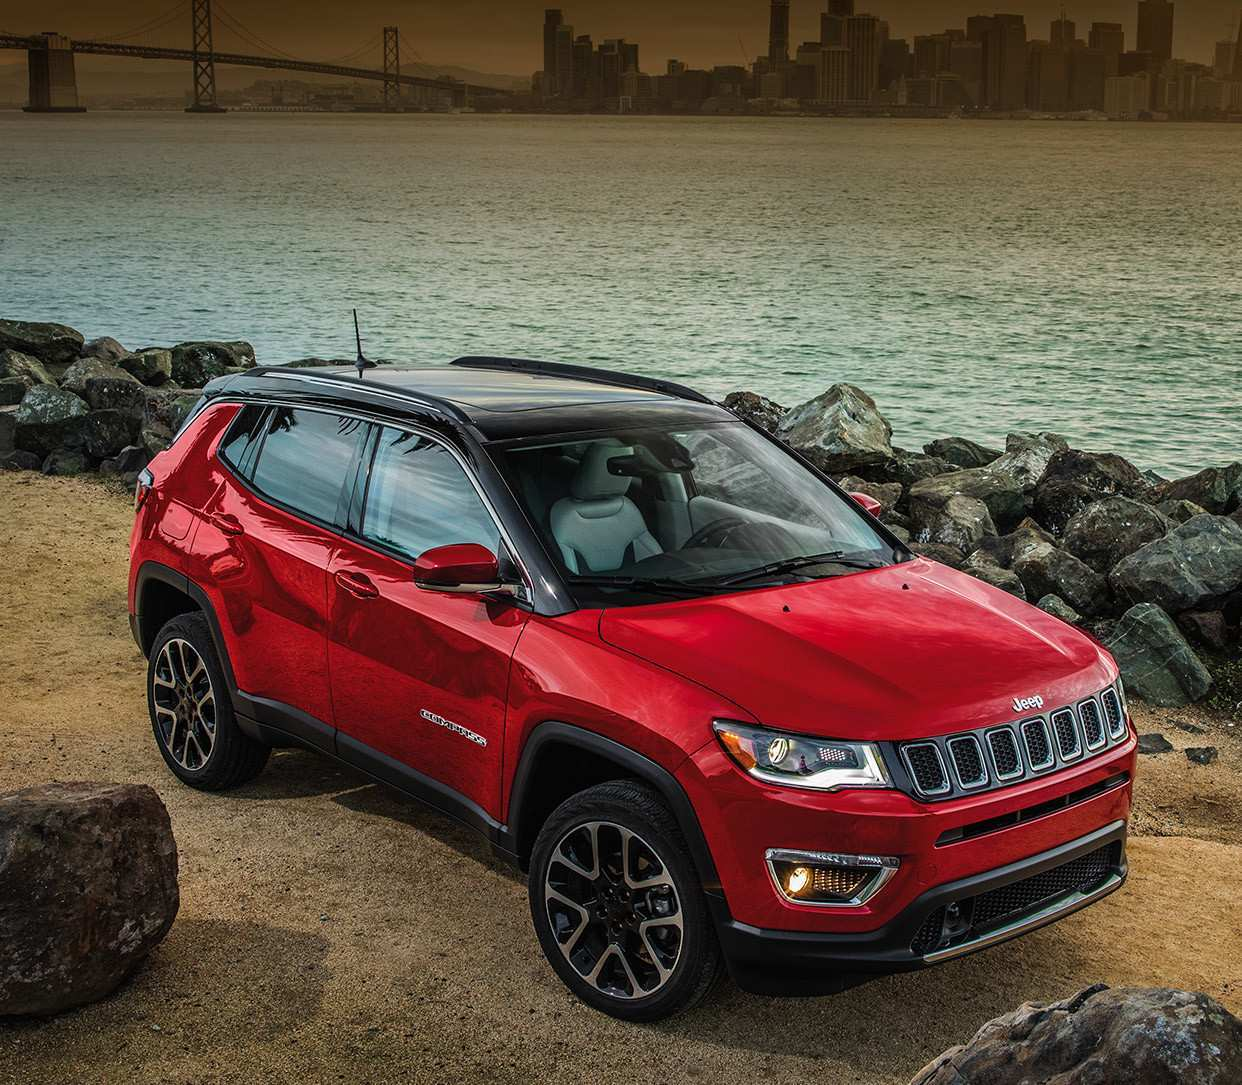 31 All New Jeep Compass 2020 Pictures